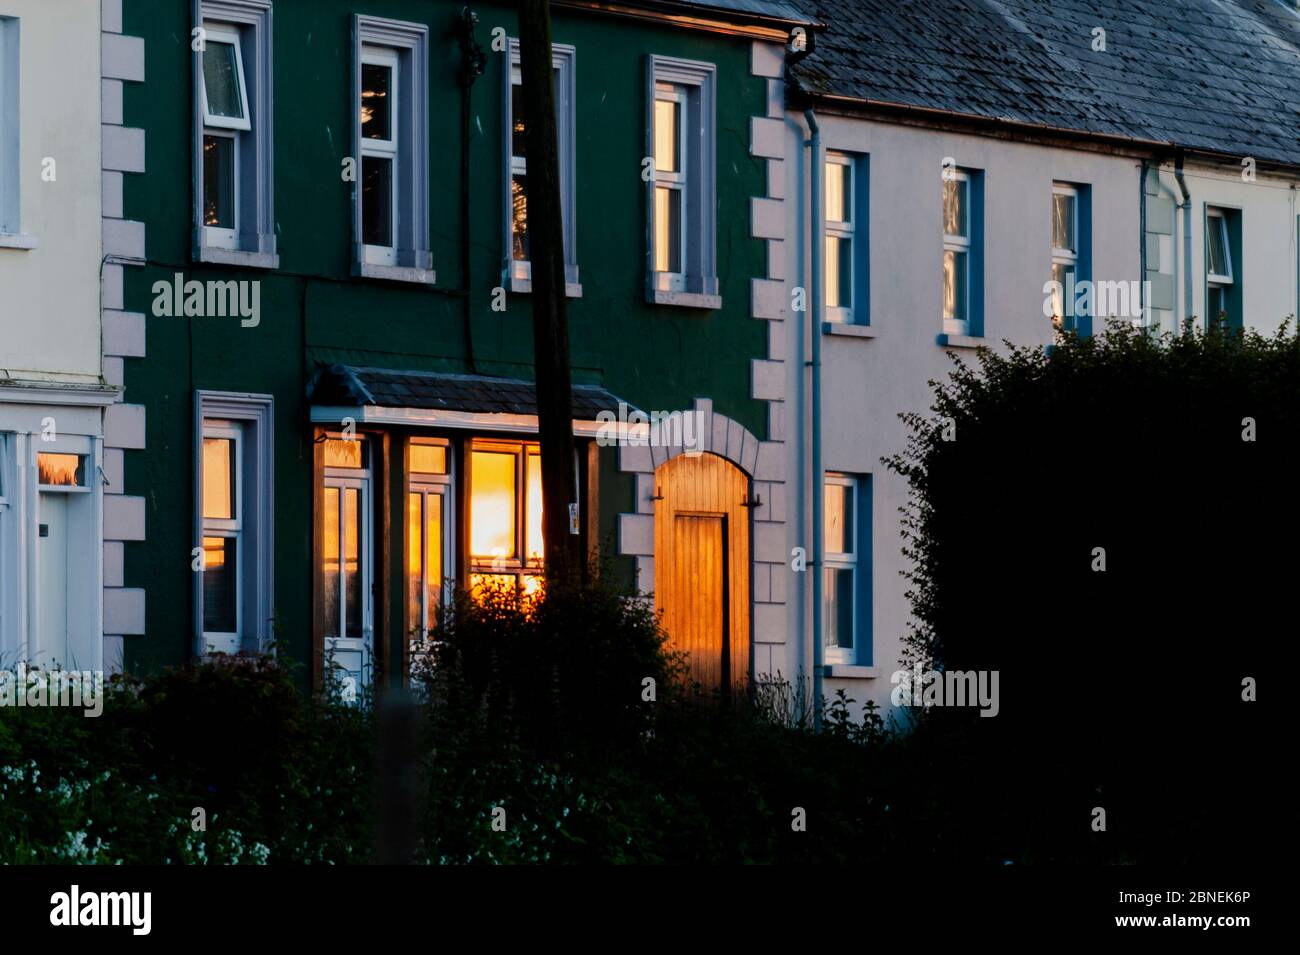 courtmacsherry-west-cork-ireland-14th-may-2020-the-sun-sets-spectacularly-as-a-reflection-in-a-window-of-a-house-in-courtmacsherry-after-a-day-of-sunshine-credit-ag-newsalamy-live-news-2BNEK6P.jpg